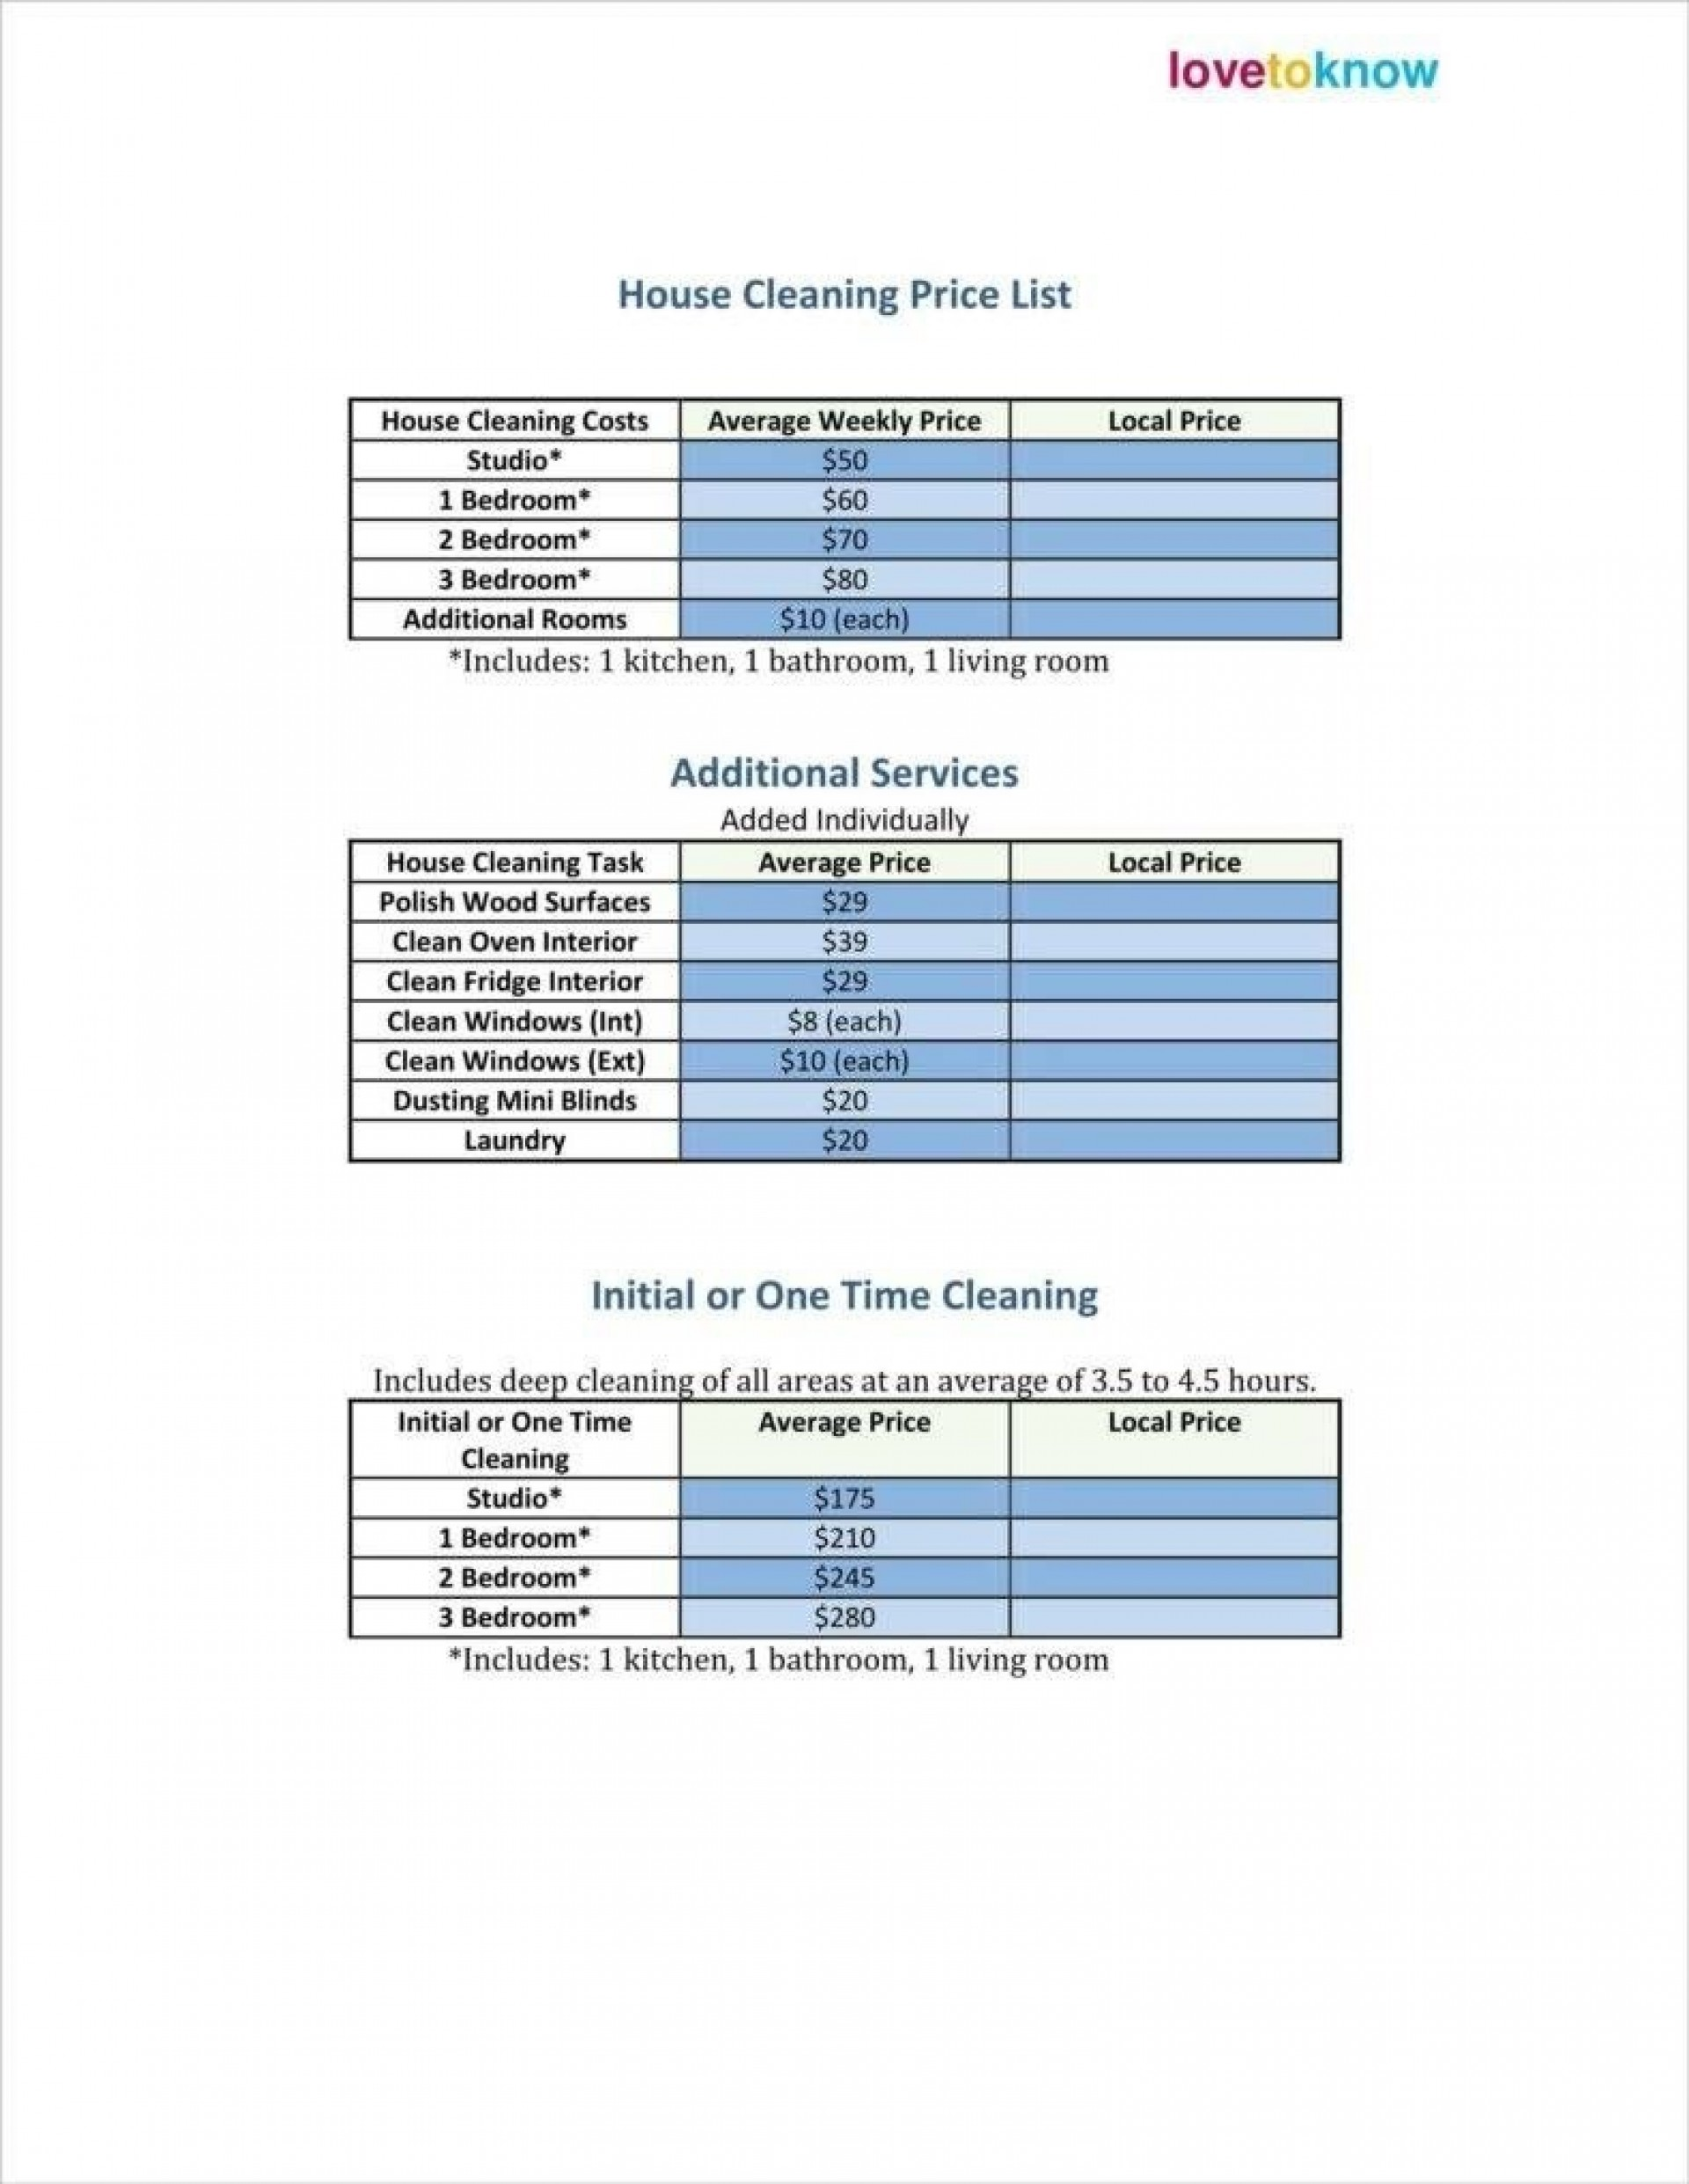 006 Excellent Cleaning Service Price List Template High Def  Commercial Pdf1920